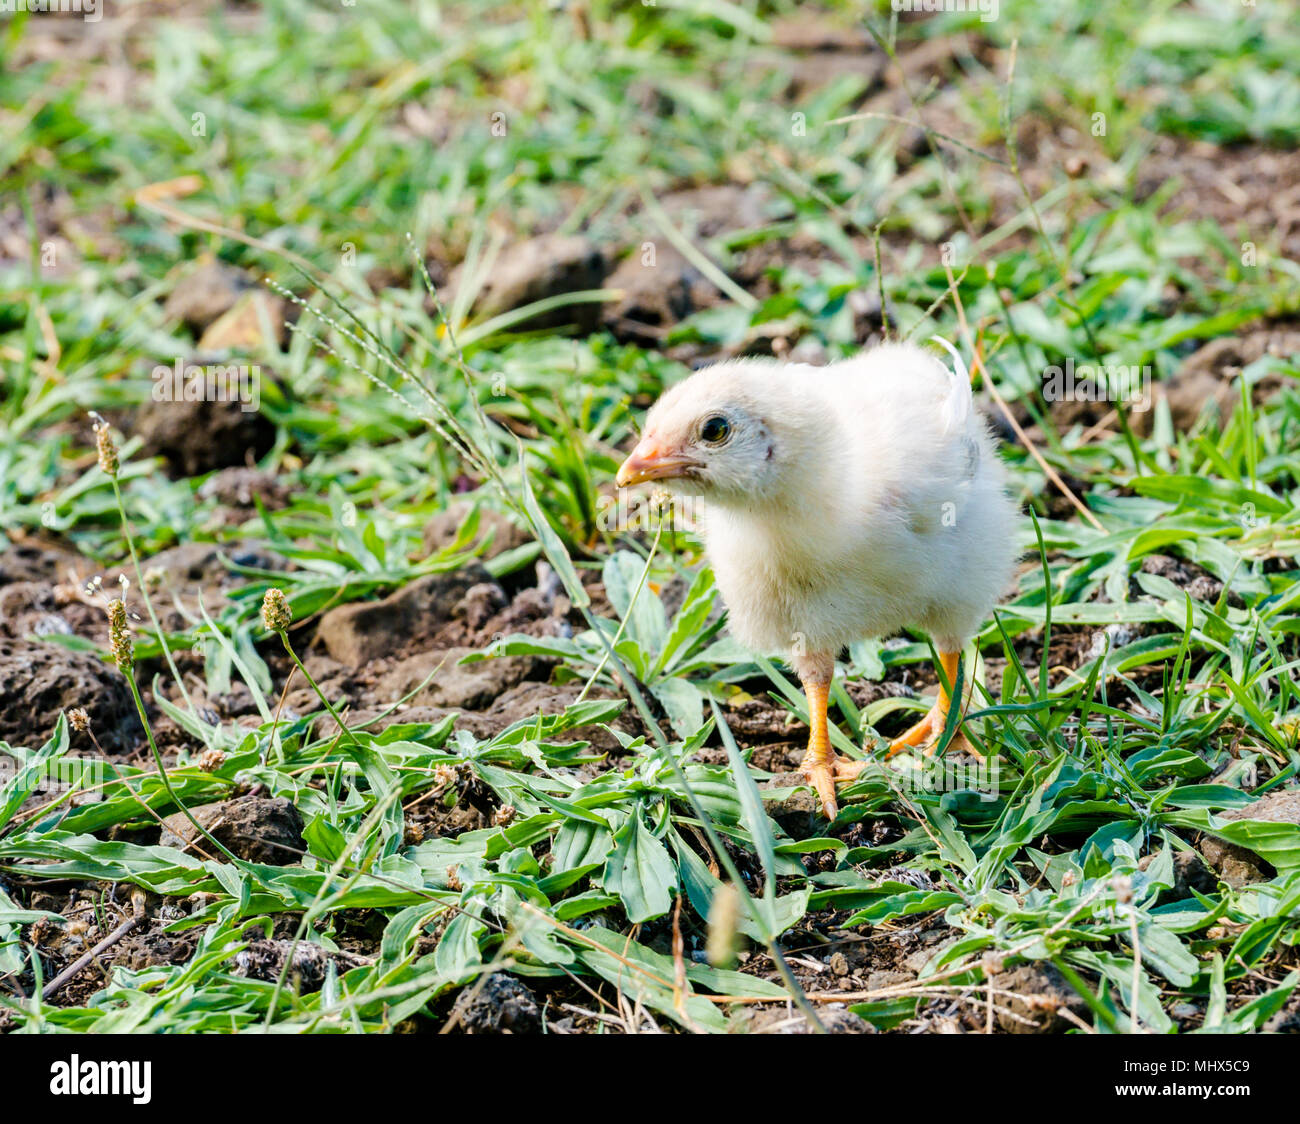 Domestic farmyard chicken, Easter Island, Chile. Close up of single fluffy yellow young chick - Stock Image